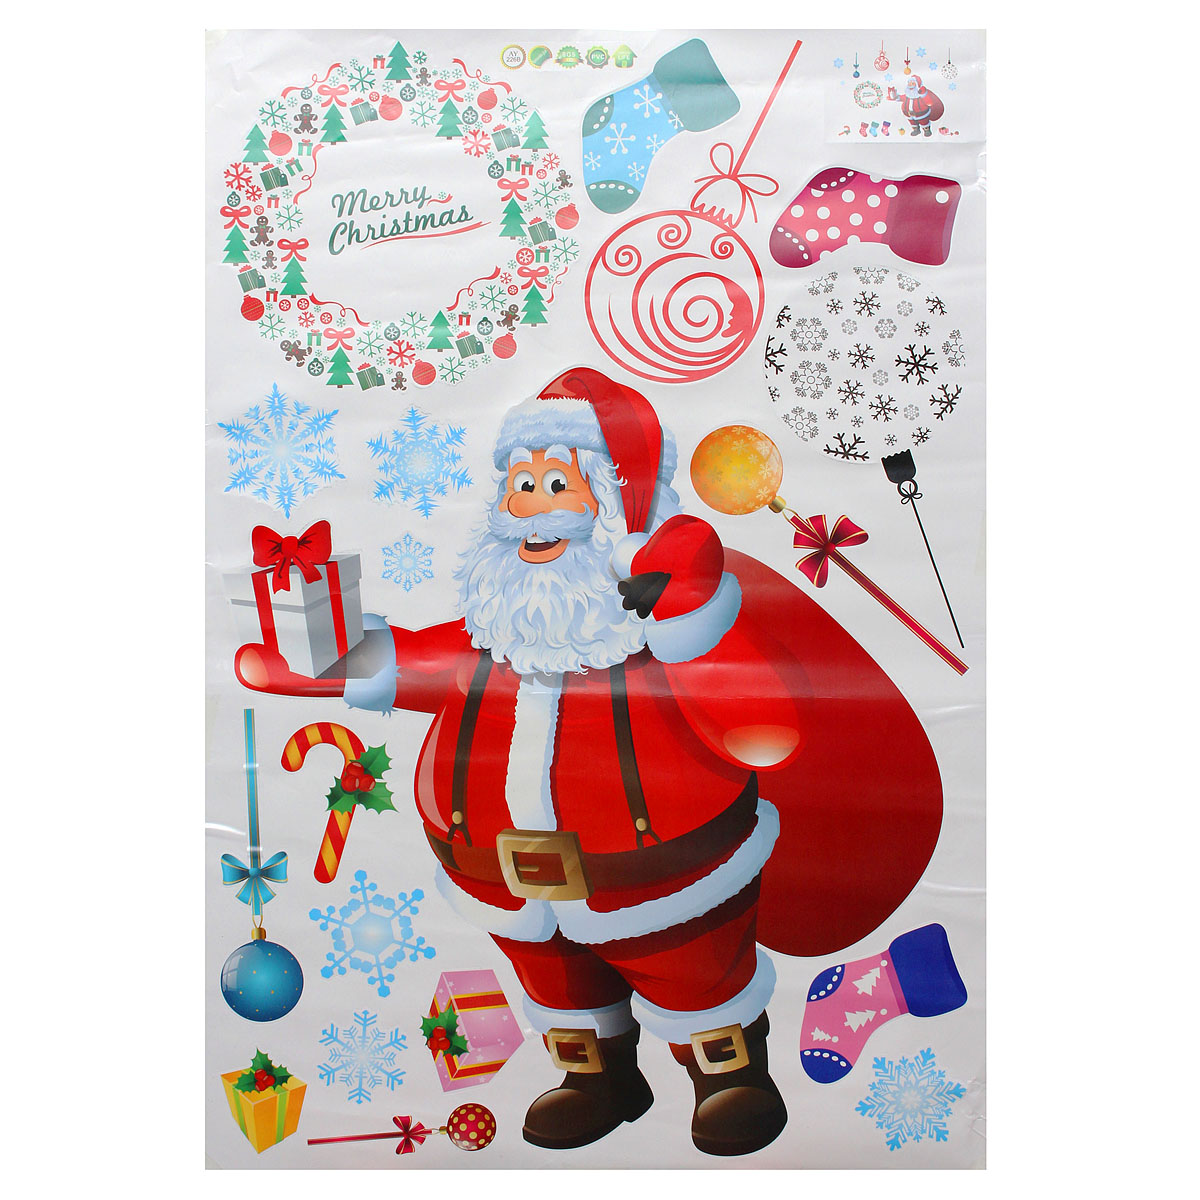 Christmas Santa Claus Gift Removable Wall Sticker DIY Window Door Home Decoration